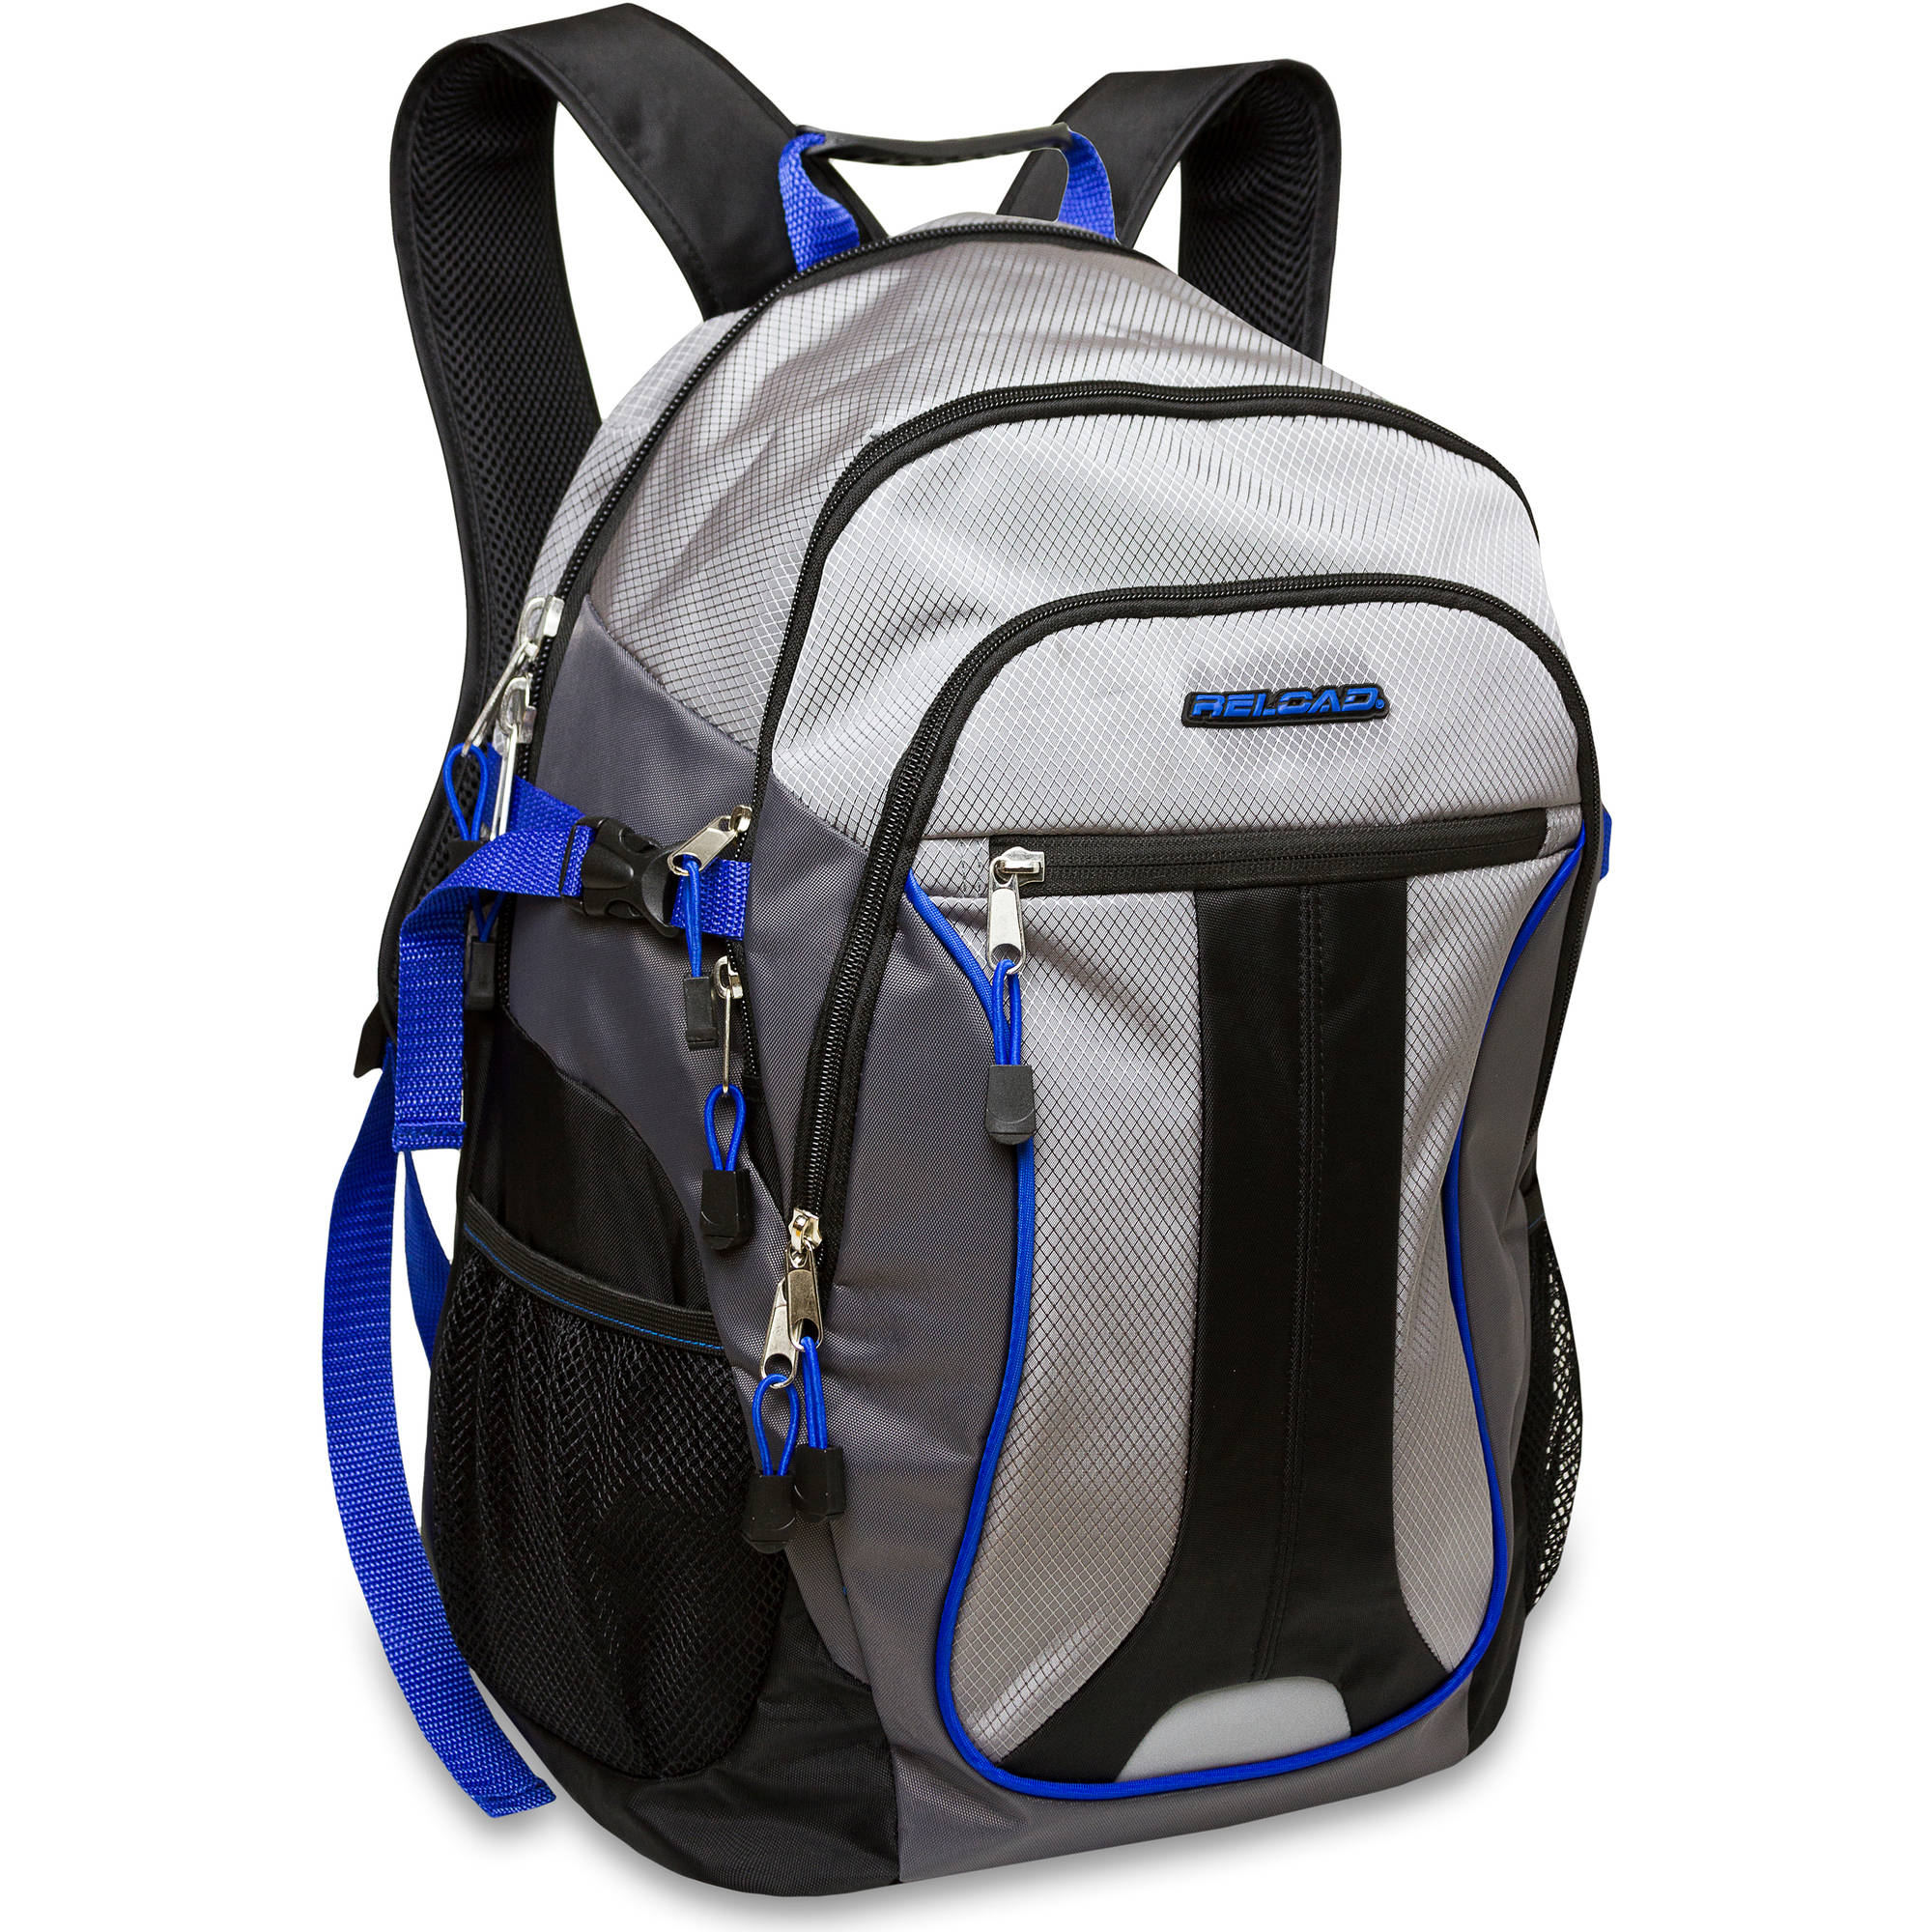 19 inch Reload Jacquard Multi Section Backpack with Tech Section and Reflective Trim